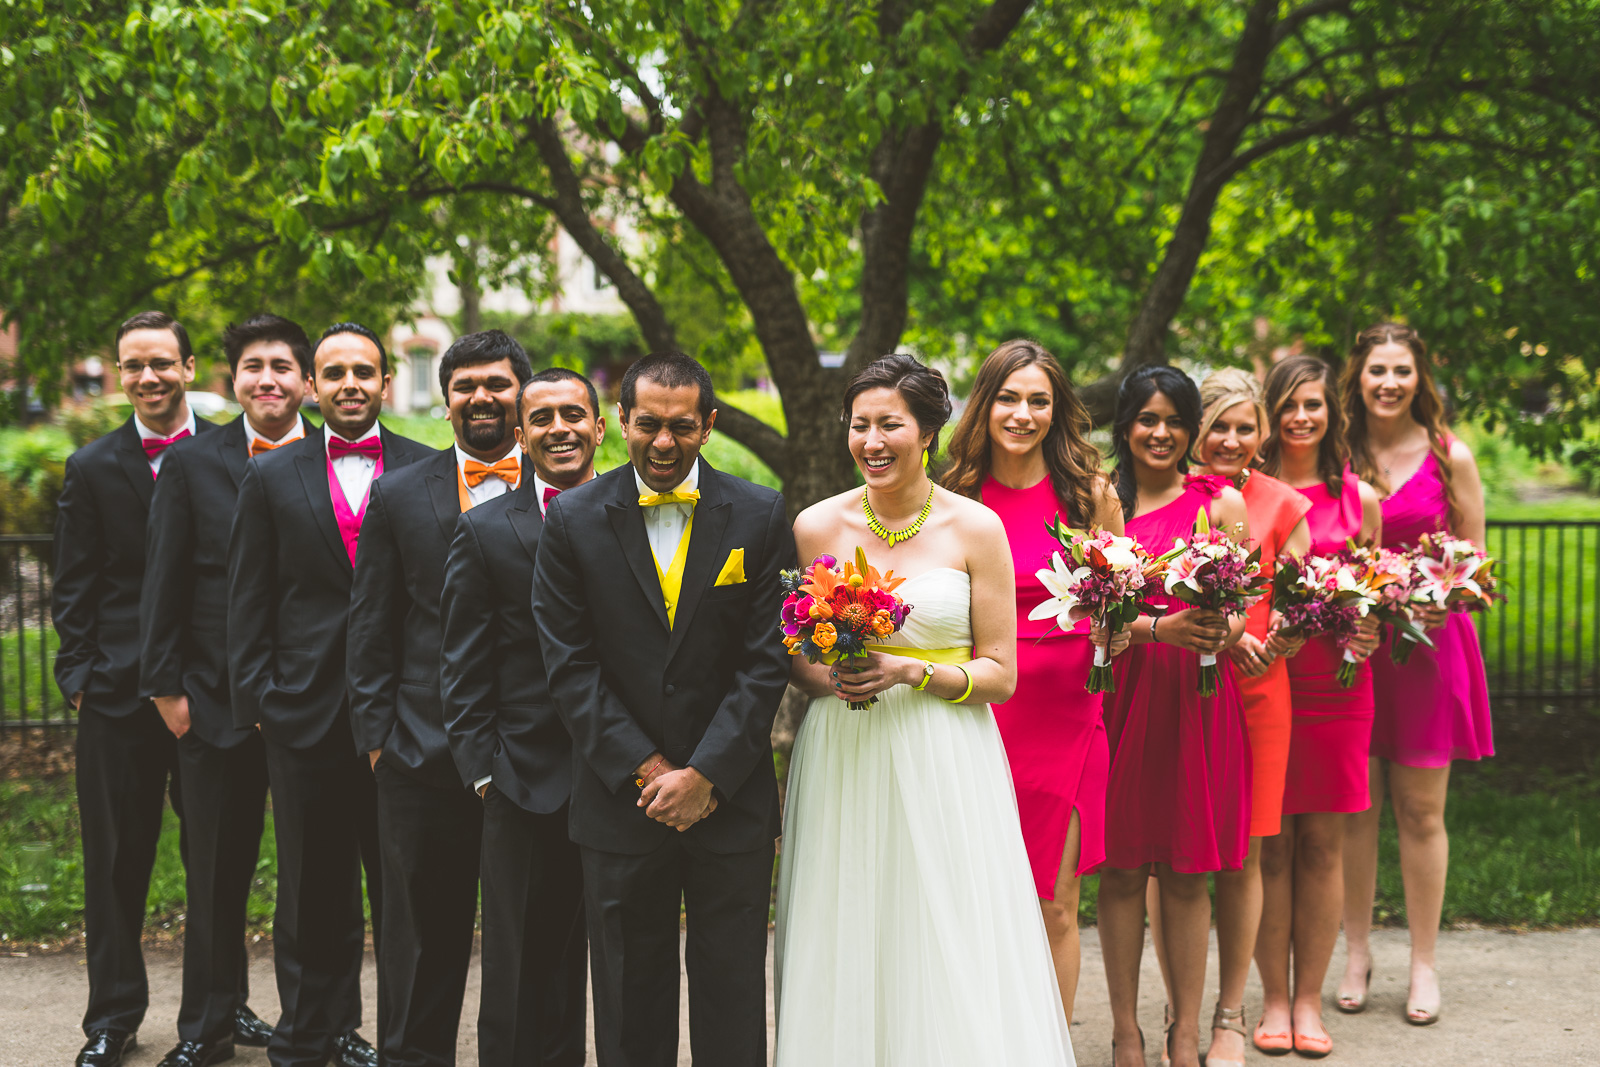 40 bridal party photos - Jackie + Raj // Chicago Wedding Photography at Floating World Gallery